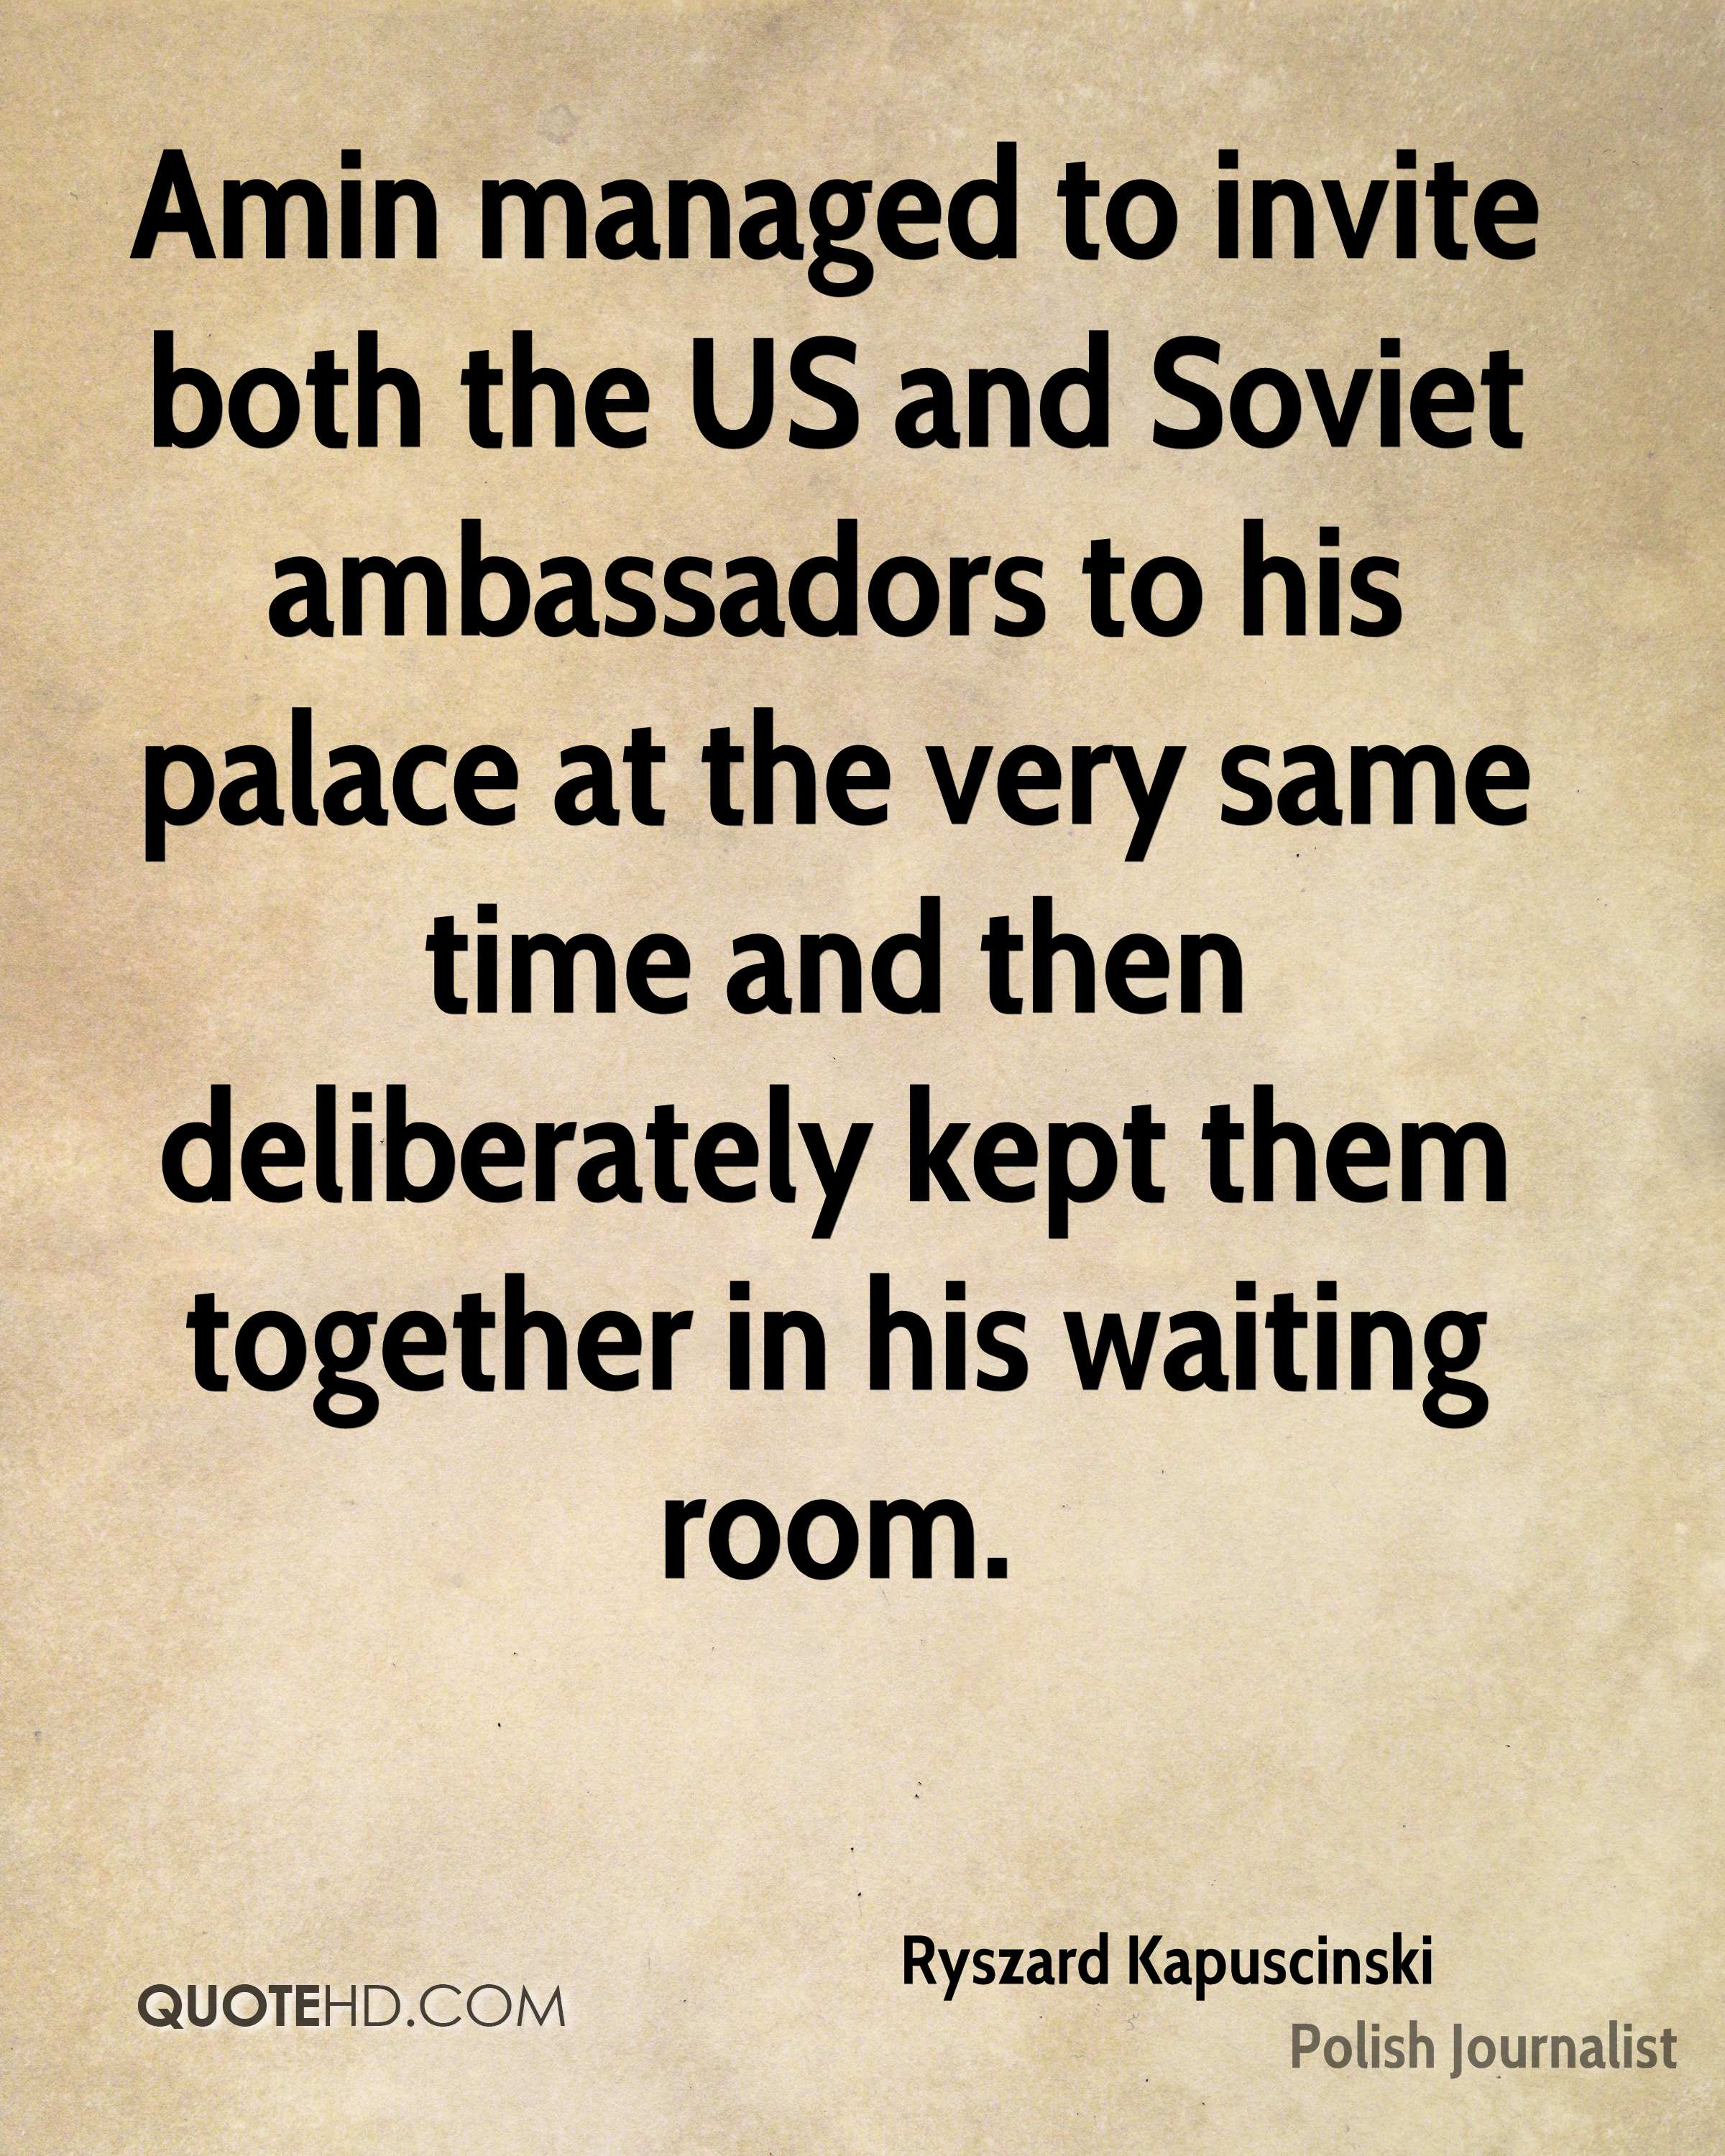 Amin managed to invite both the US and Soviet ambassadors to his palace at the very same time and then deliberately kept them together in his waiting room.